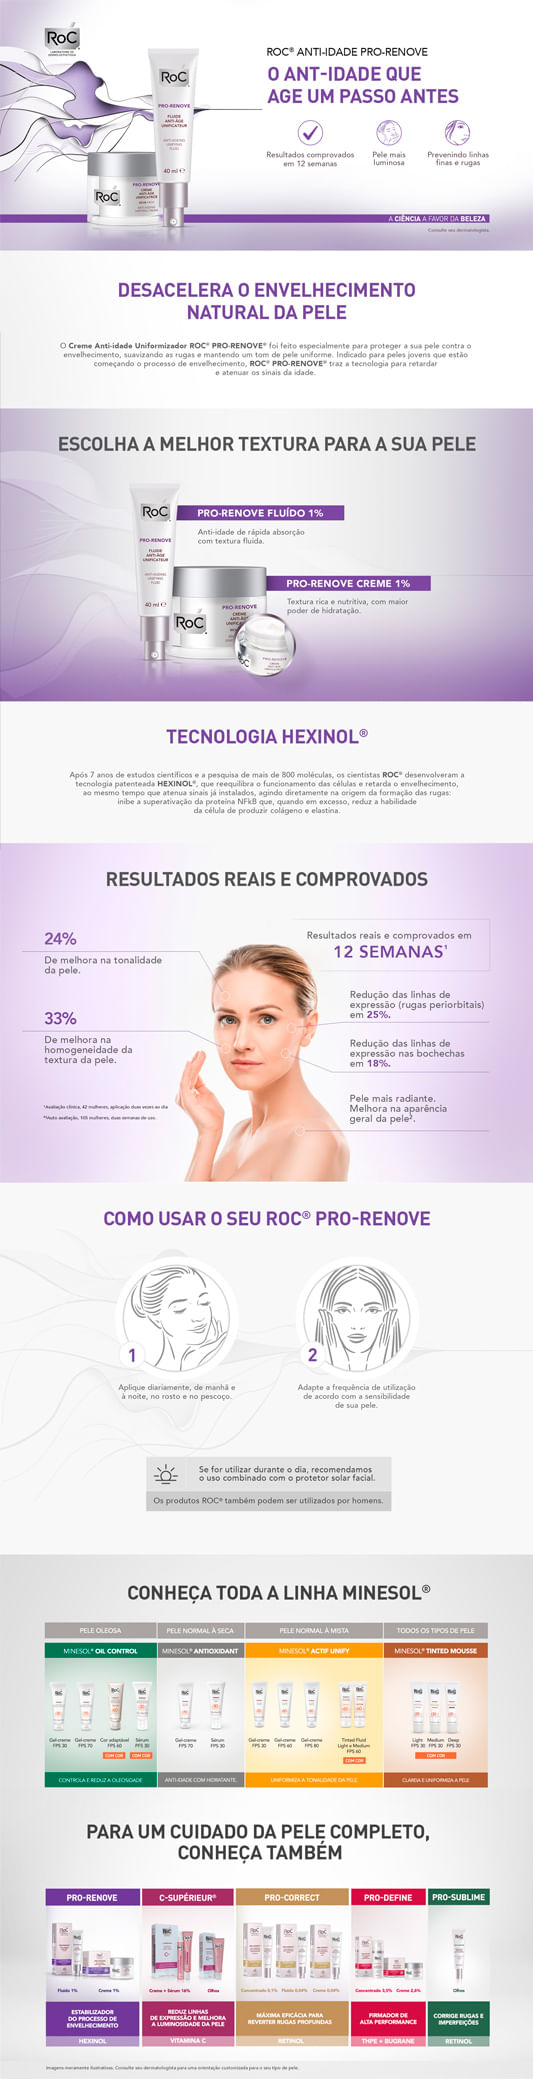 Pro-Renove Anti-Ageing Unifying Cream Roc - Tratamento Anti-Idade